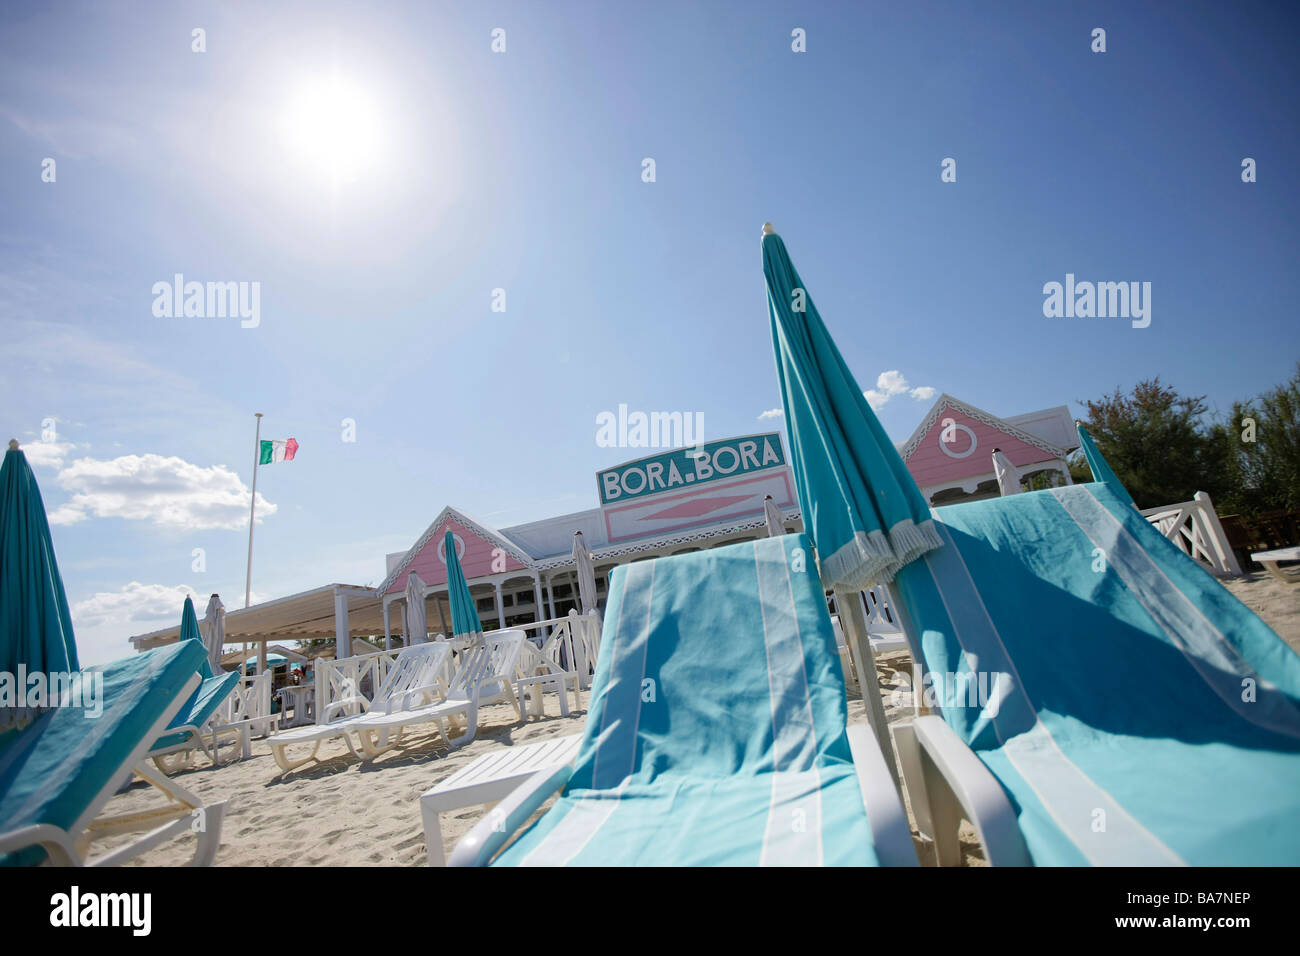 Sunshades and sun loungers on Tahiti beach, St. Tropez, Cote d'Azur, Provence, France - Stock Image